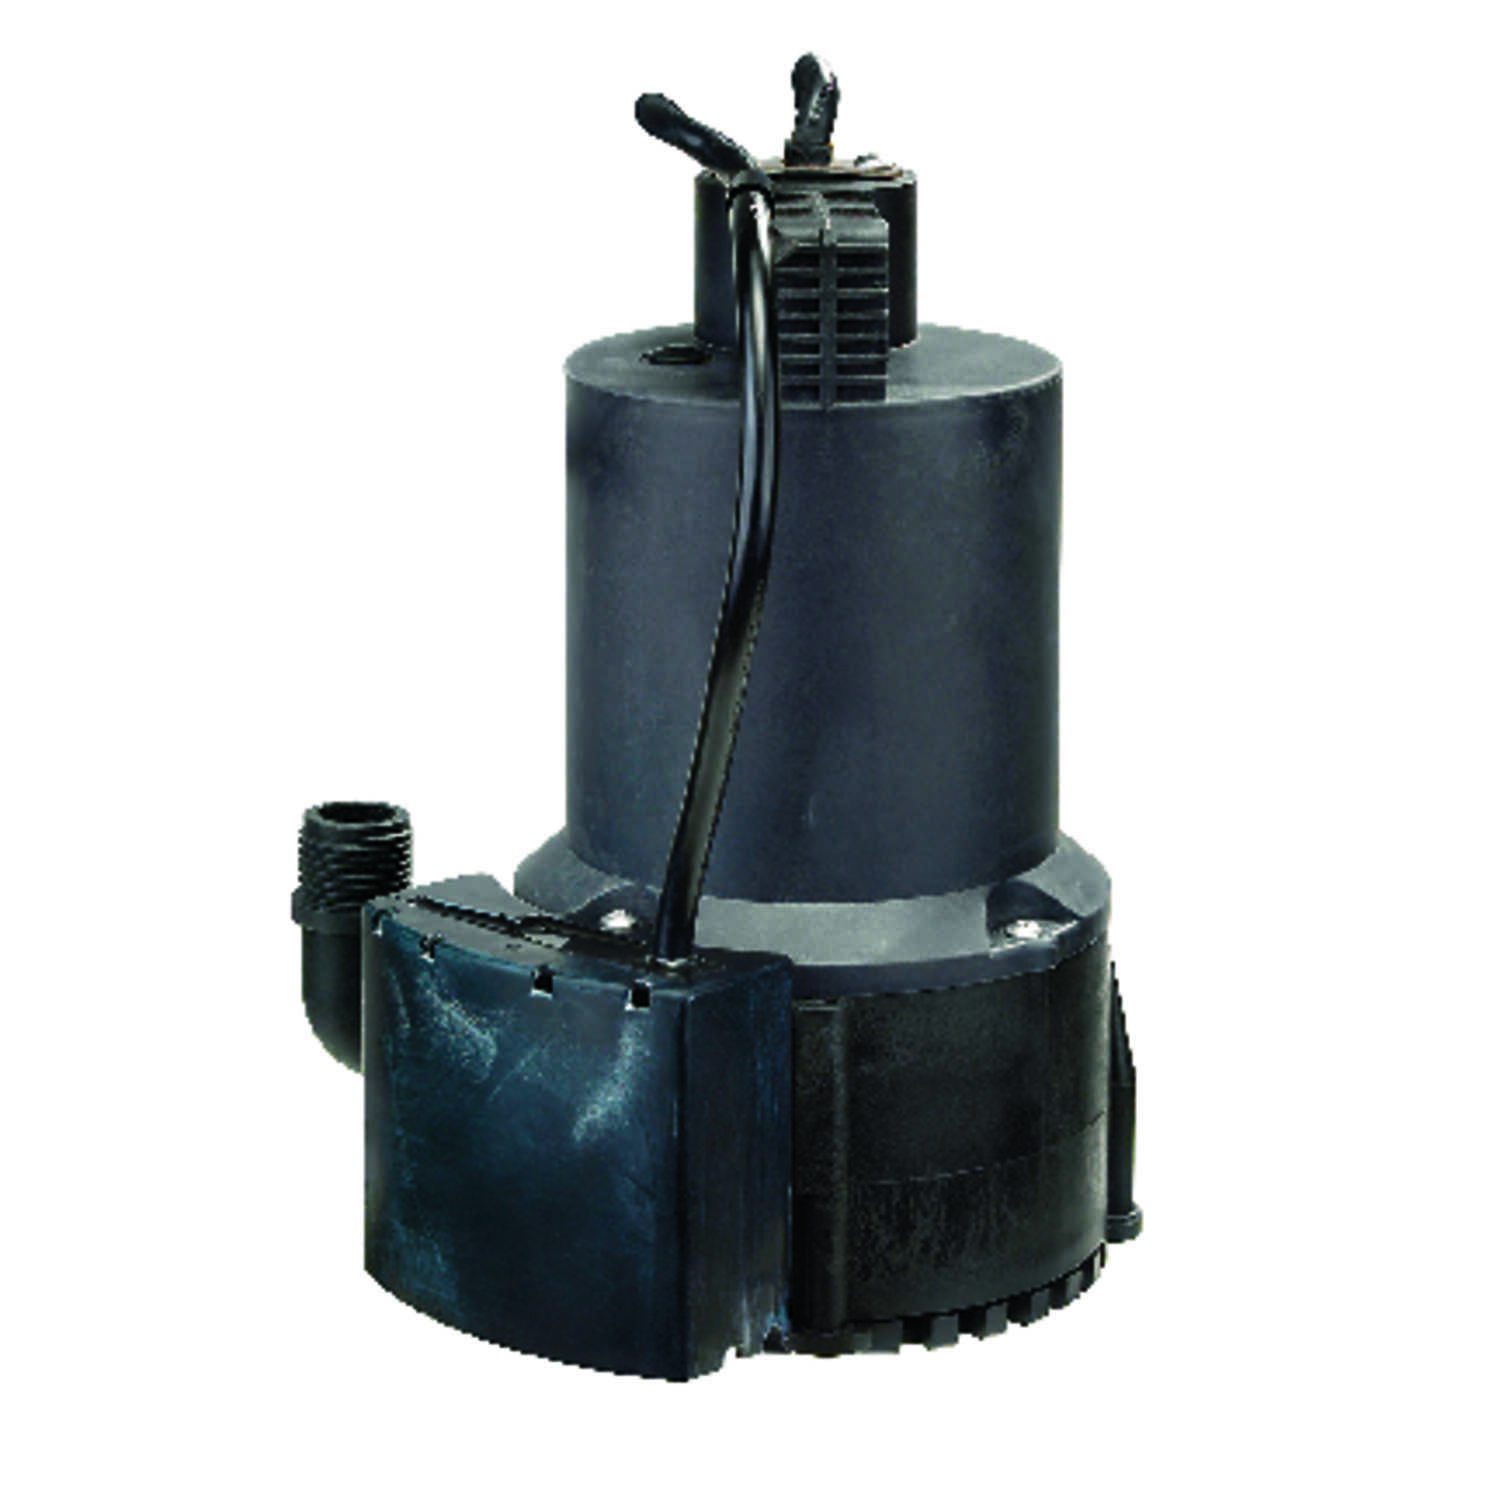 Wayne  Thermoplastic  Utility Pump  1/4 hp